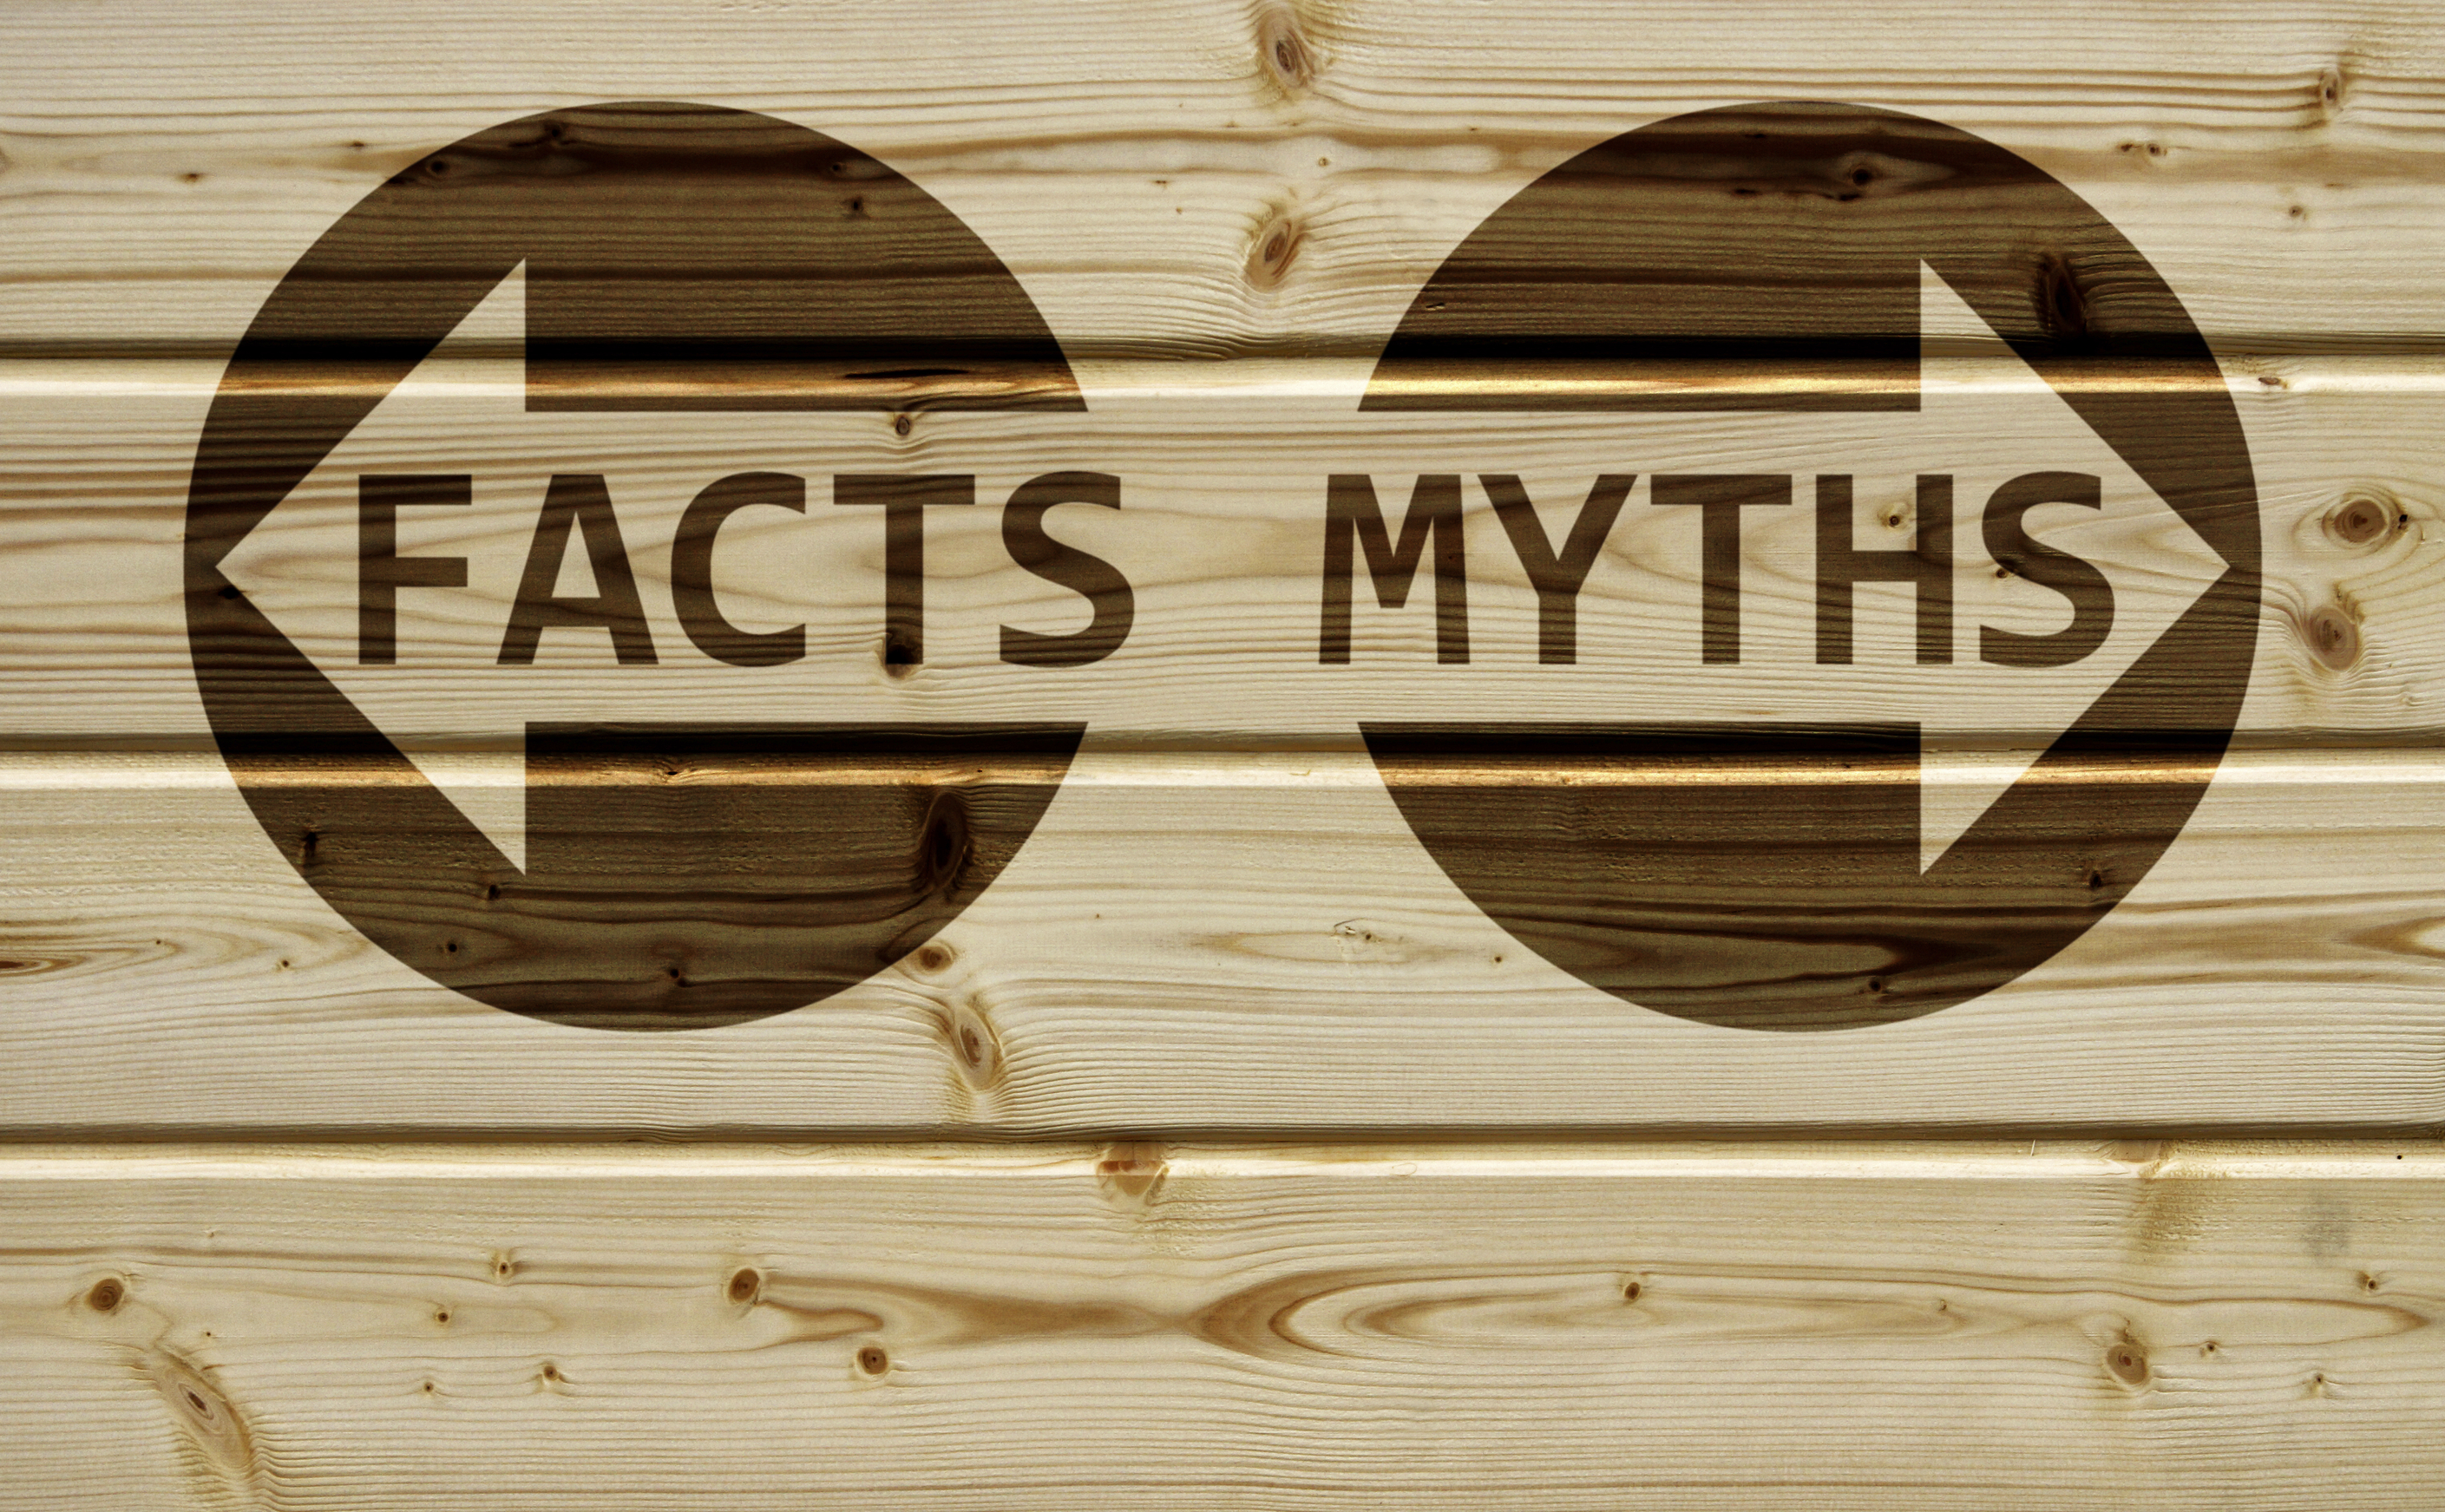 clearing up common misconceptions and myths surrounding herpes Herpes myths vs facts myth: herpes isn't that common and i am unlikely (causing genital herpes) through oral to genital sex up to 40% of genital herpes is.